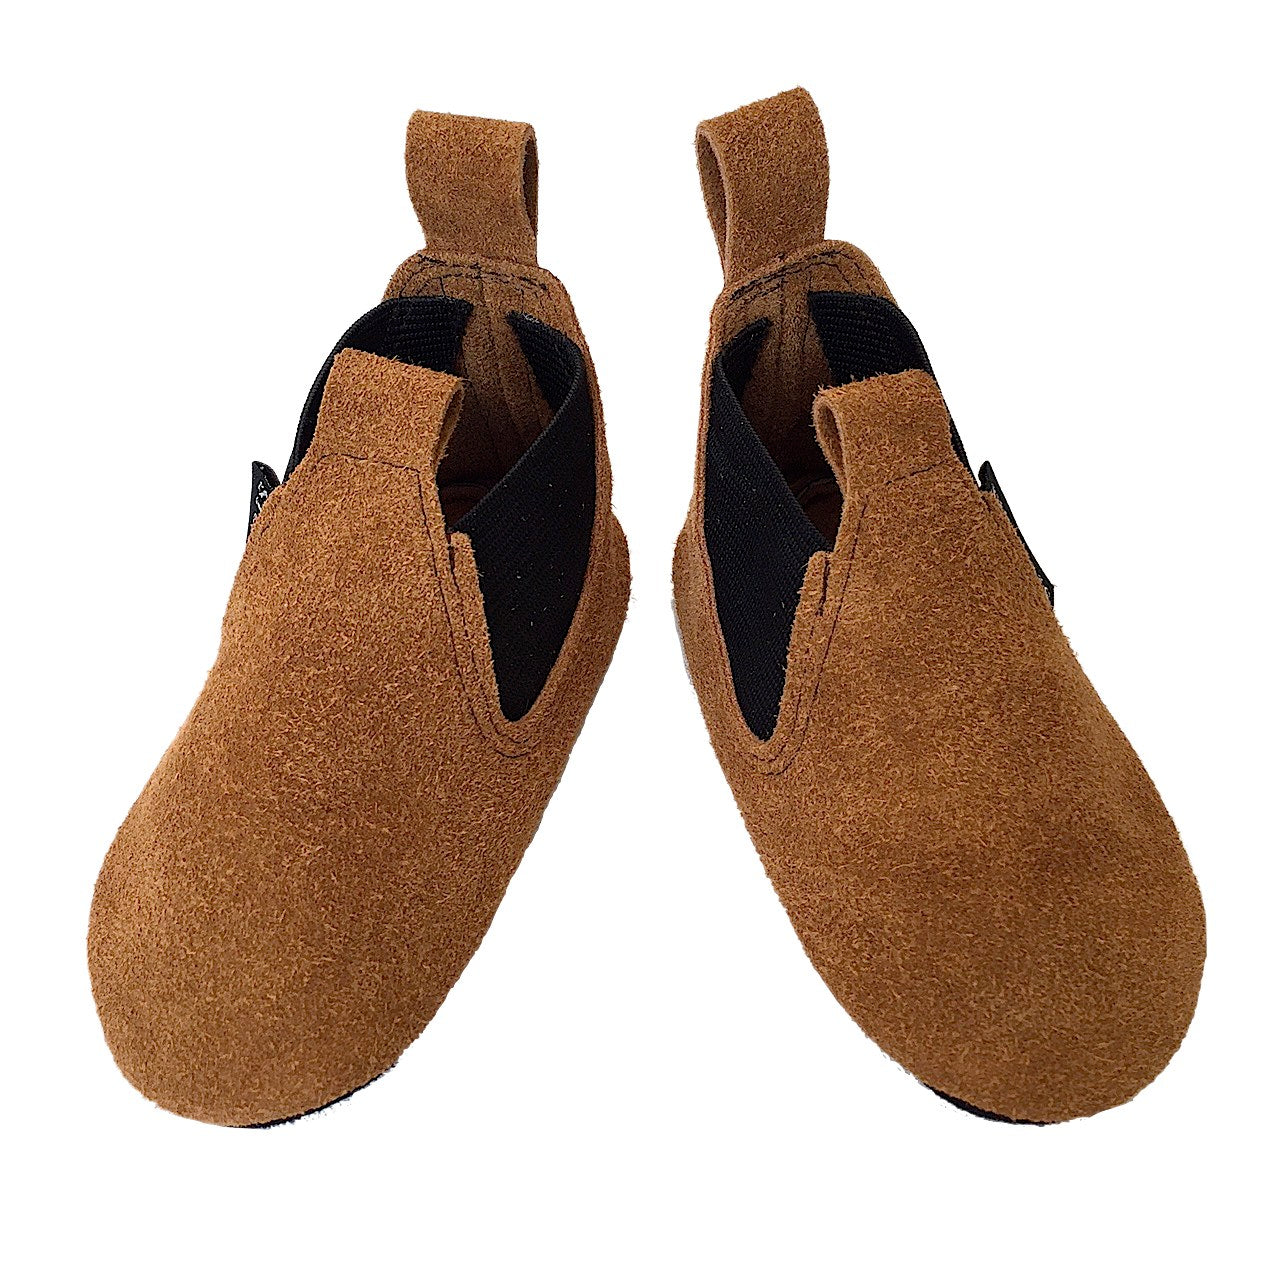 Tan suede toddler boots